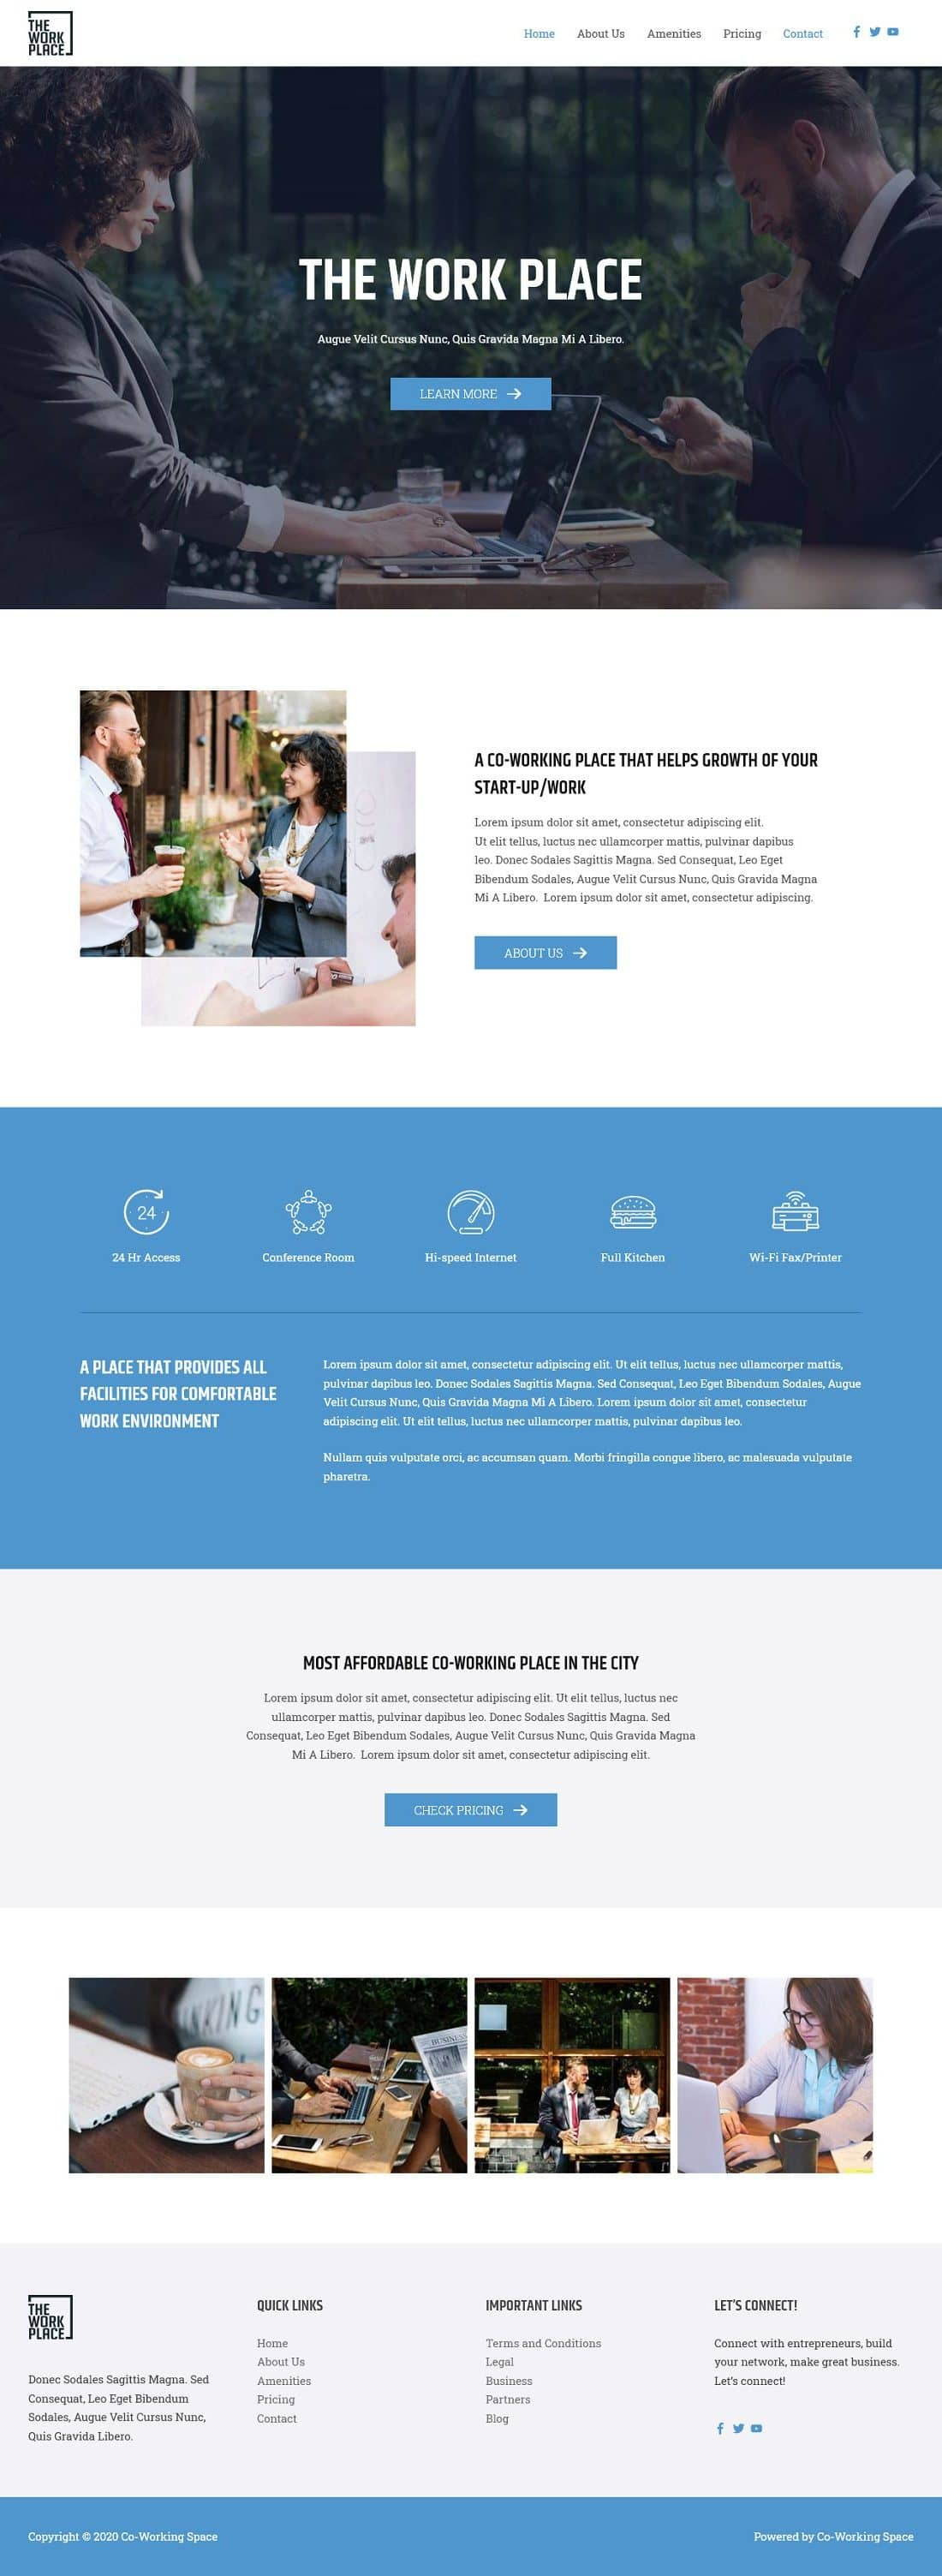 Co-Working Spaces S Home Page 1280 x 3007